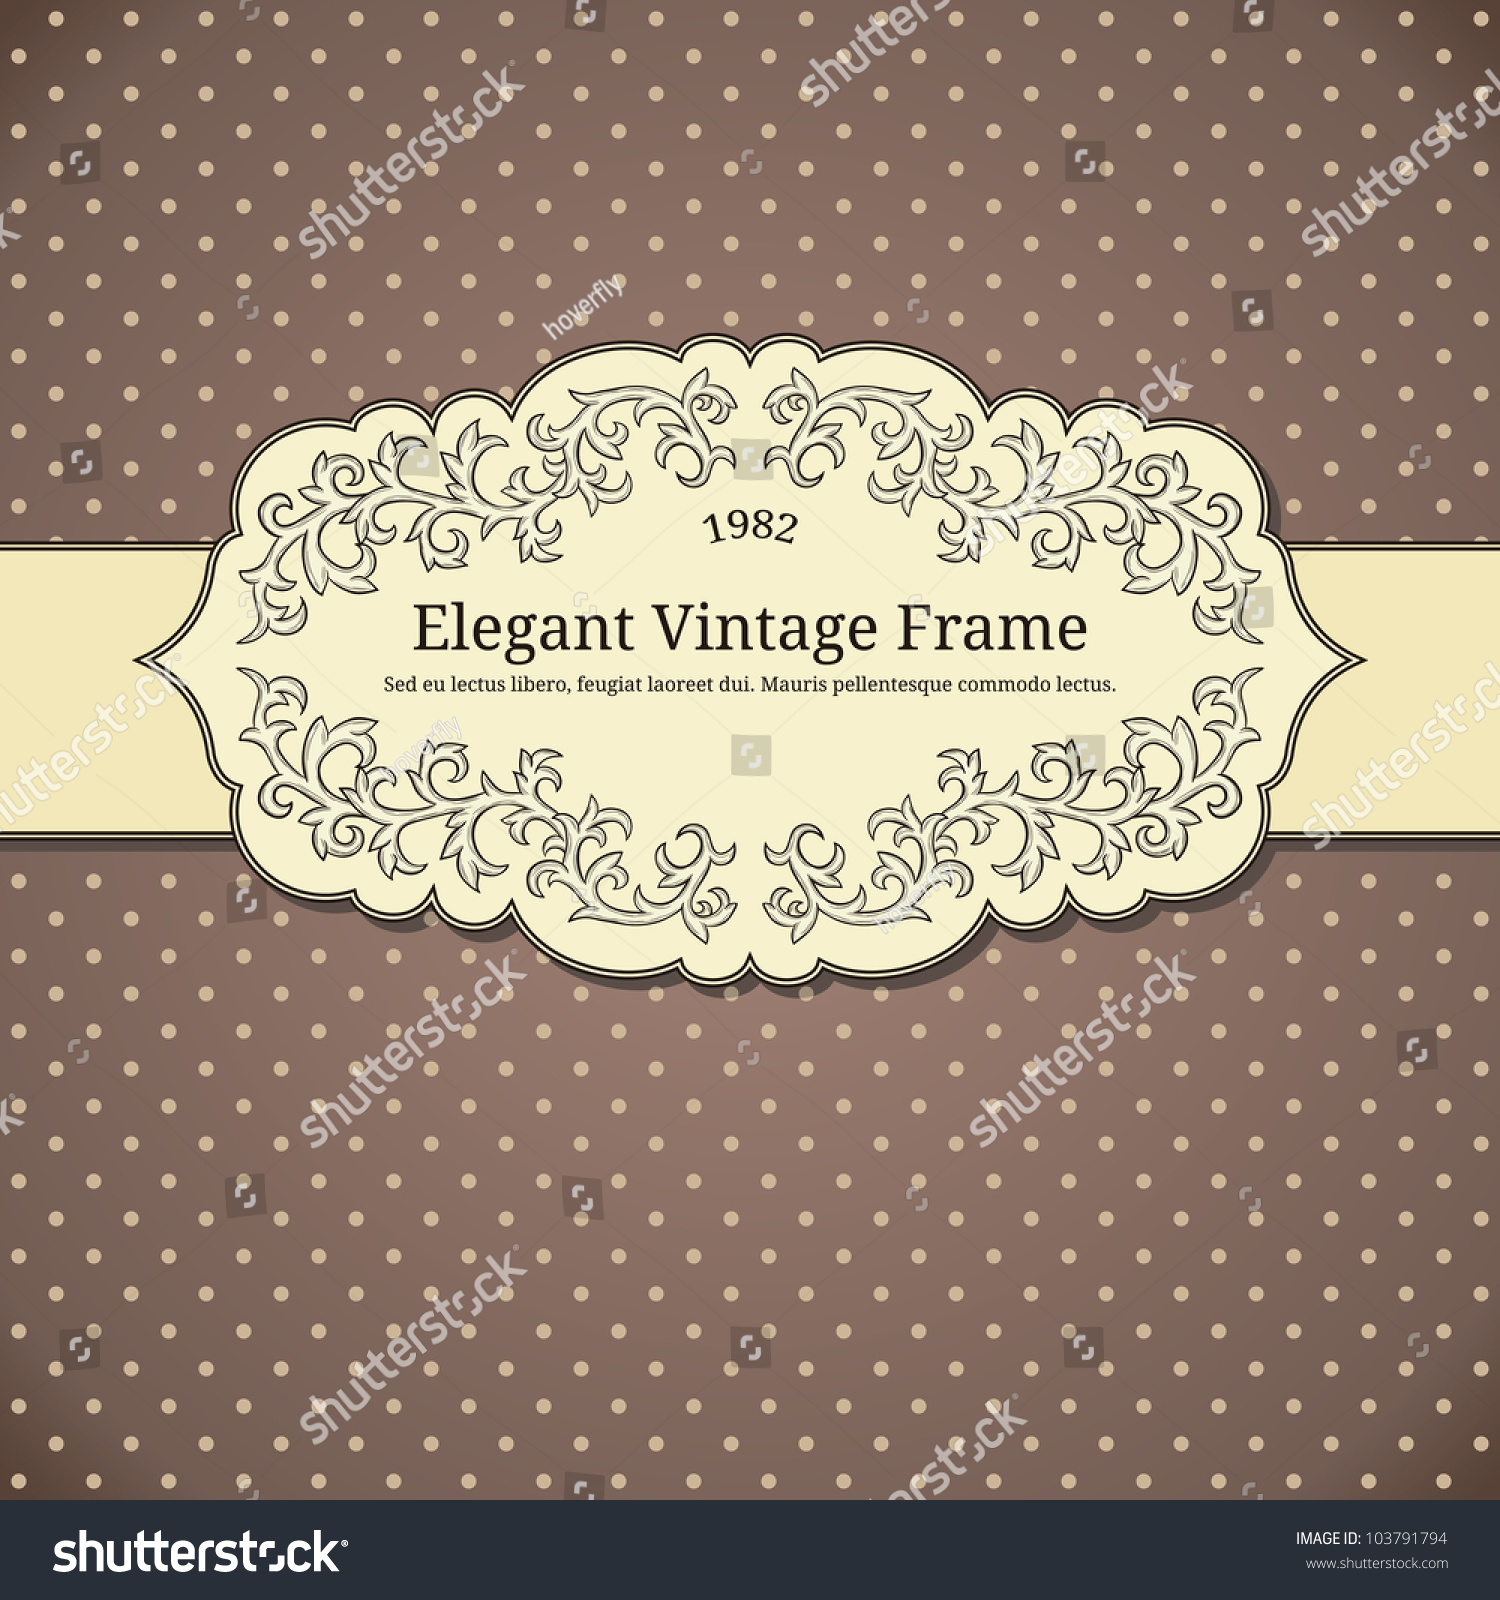 vintage background with polkadot stock vector